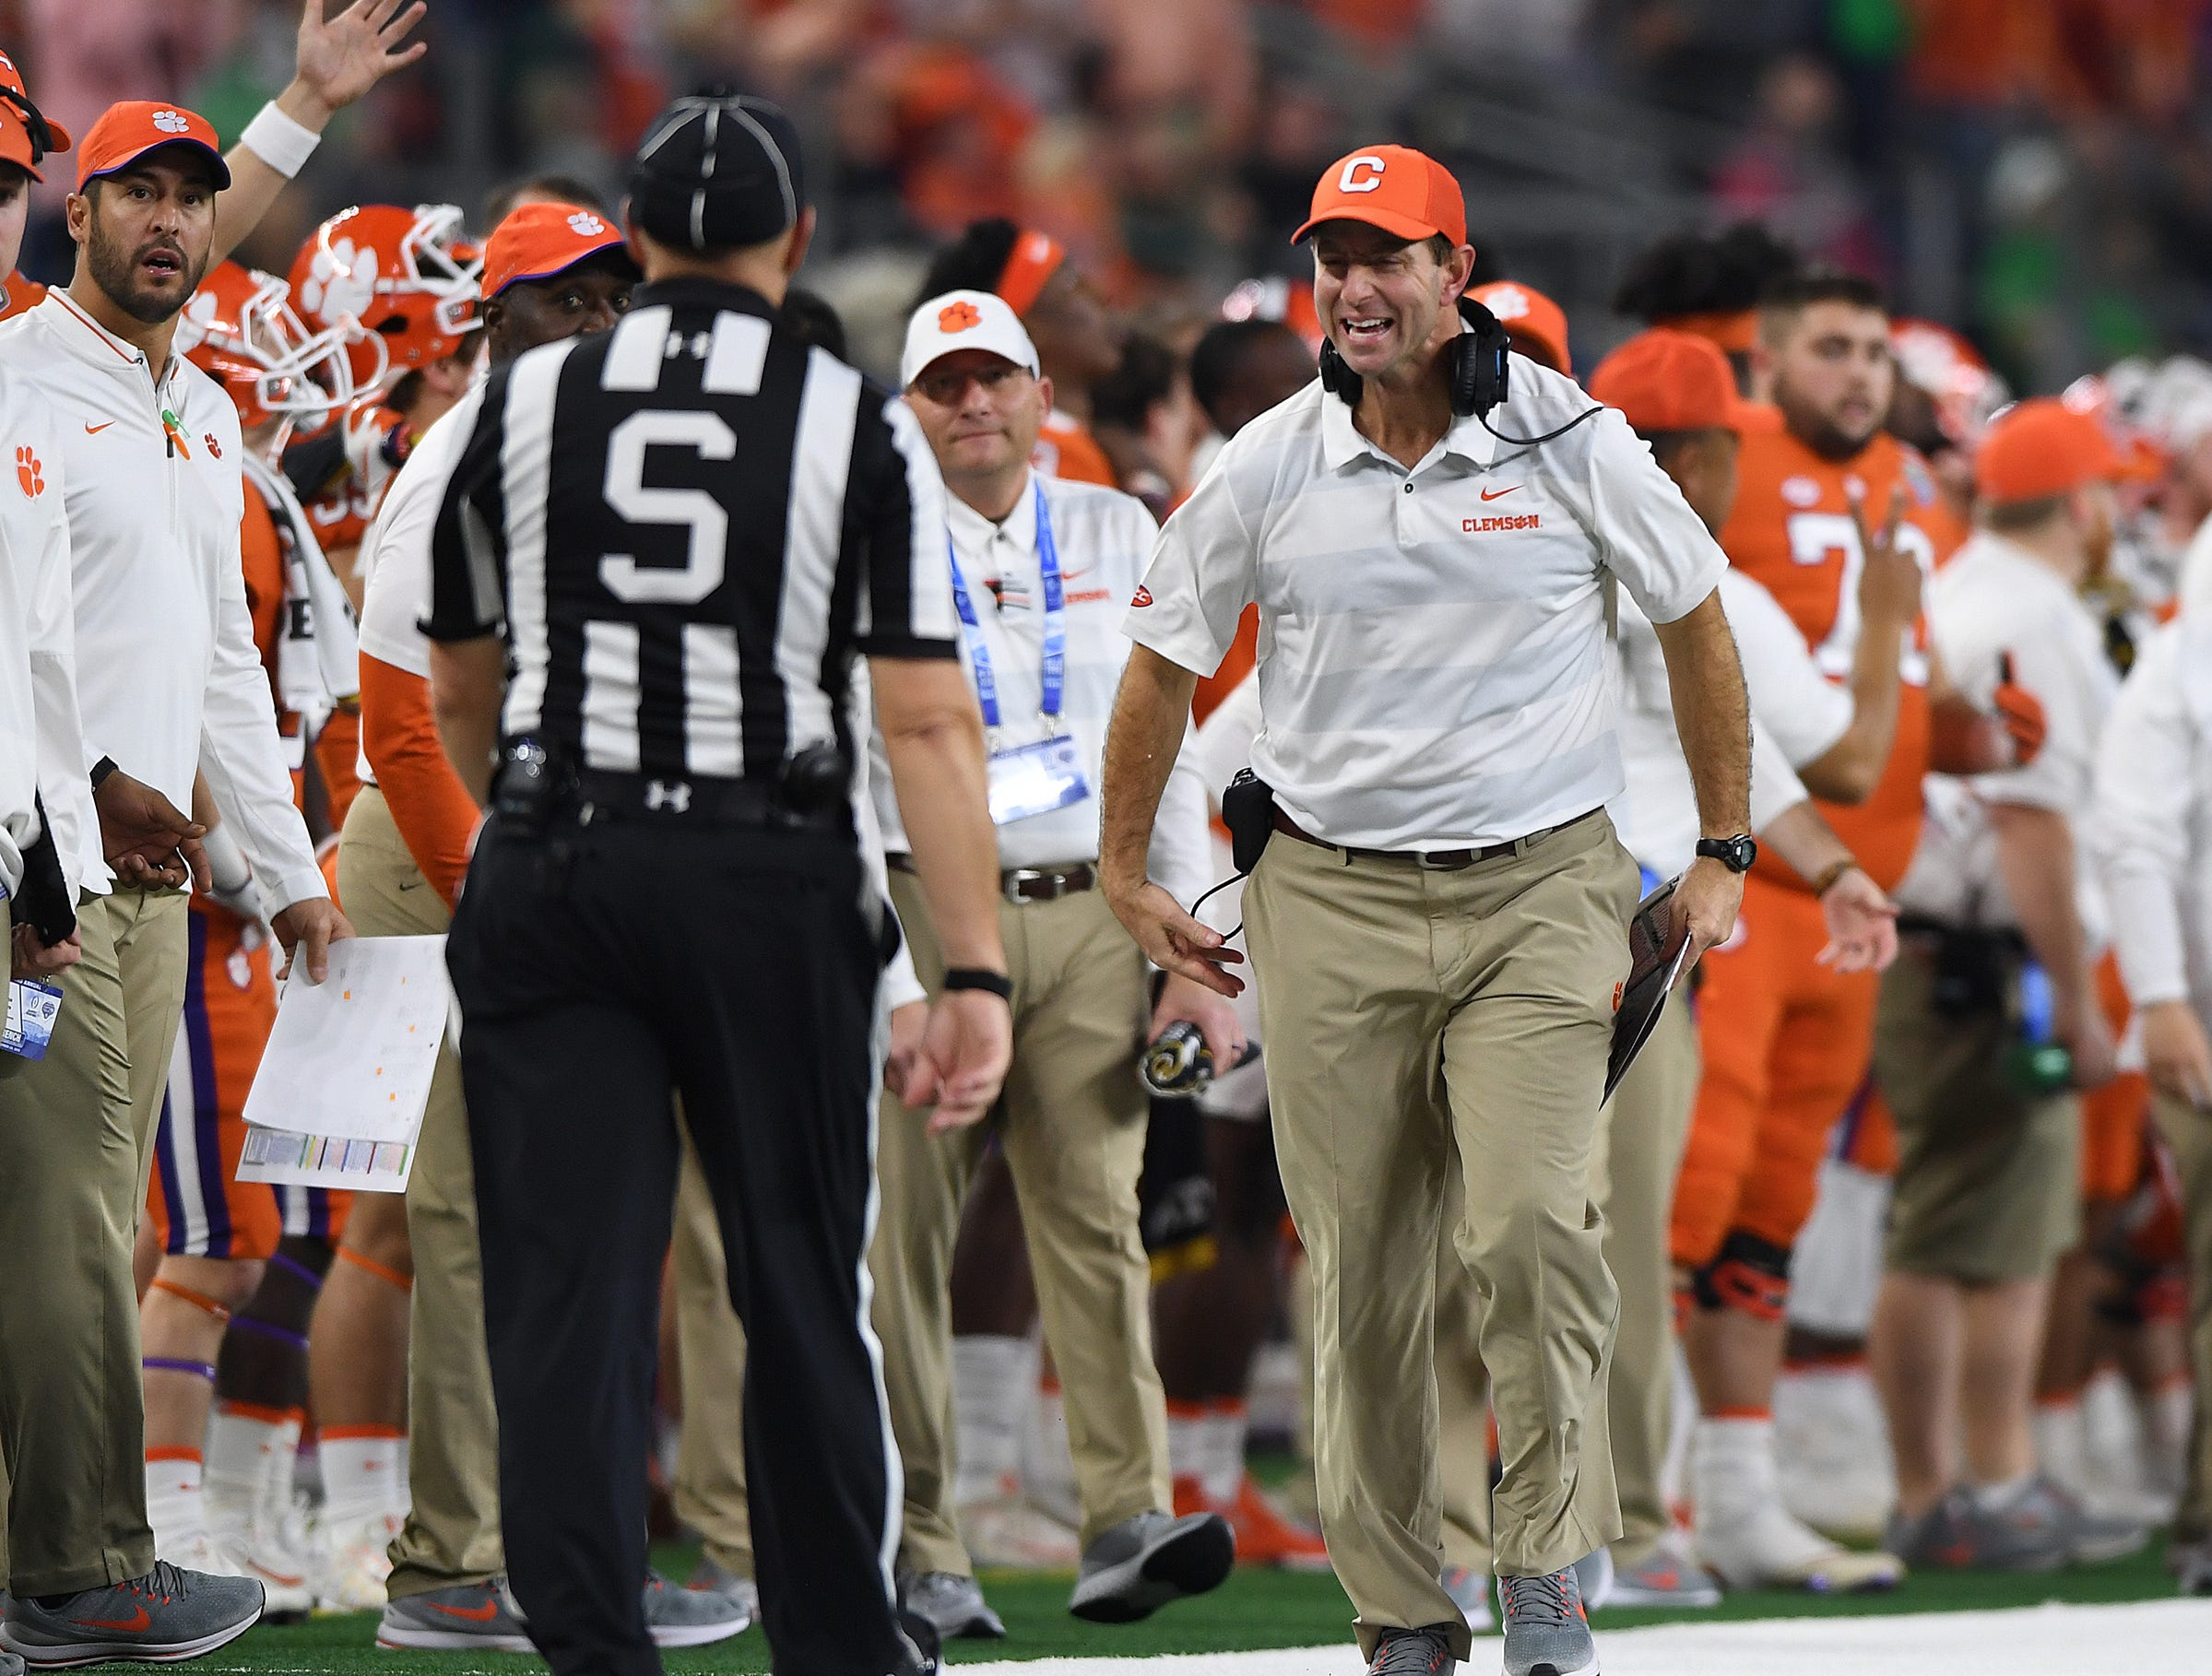 Clemson head coach Dabo Swinney during the 4th quarter of the Goodyear Cotton Bowl at AT&T stadium in Arlington, TX Saturday, December 29, 2018.